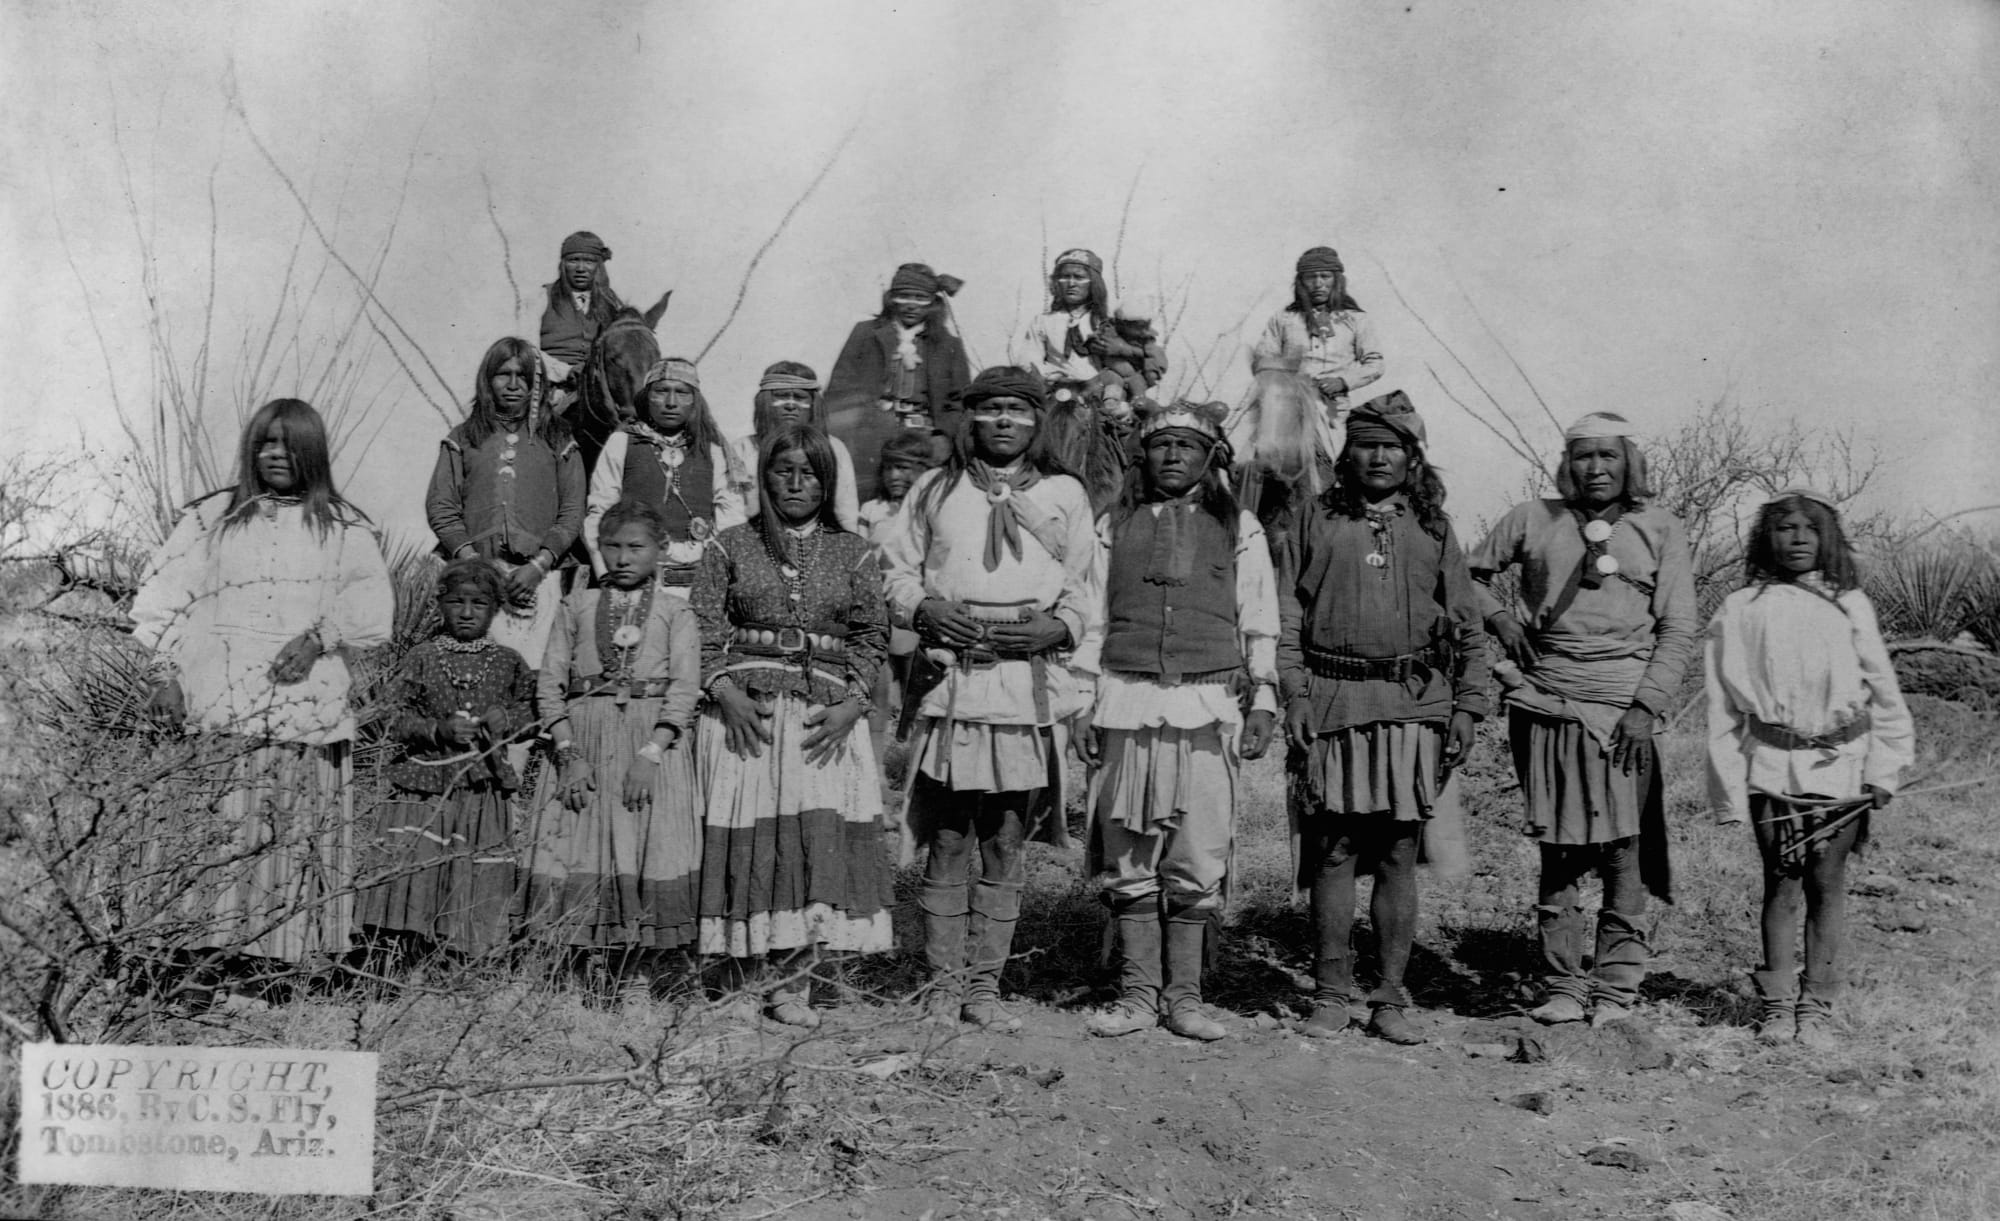 Geronimo stands with other Apache warriors, women, and children shortly before their surrender to Gen. Crook on March 27, 1886.